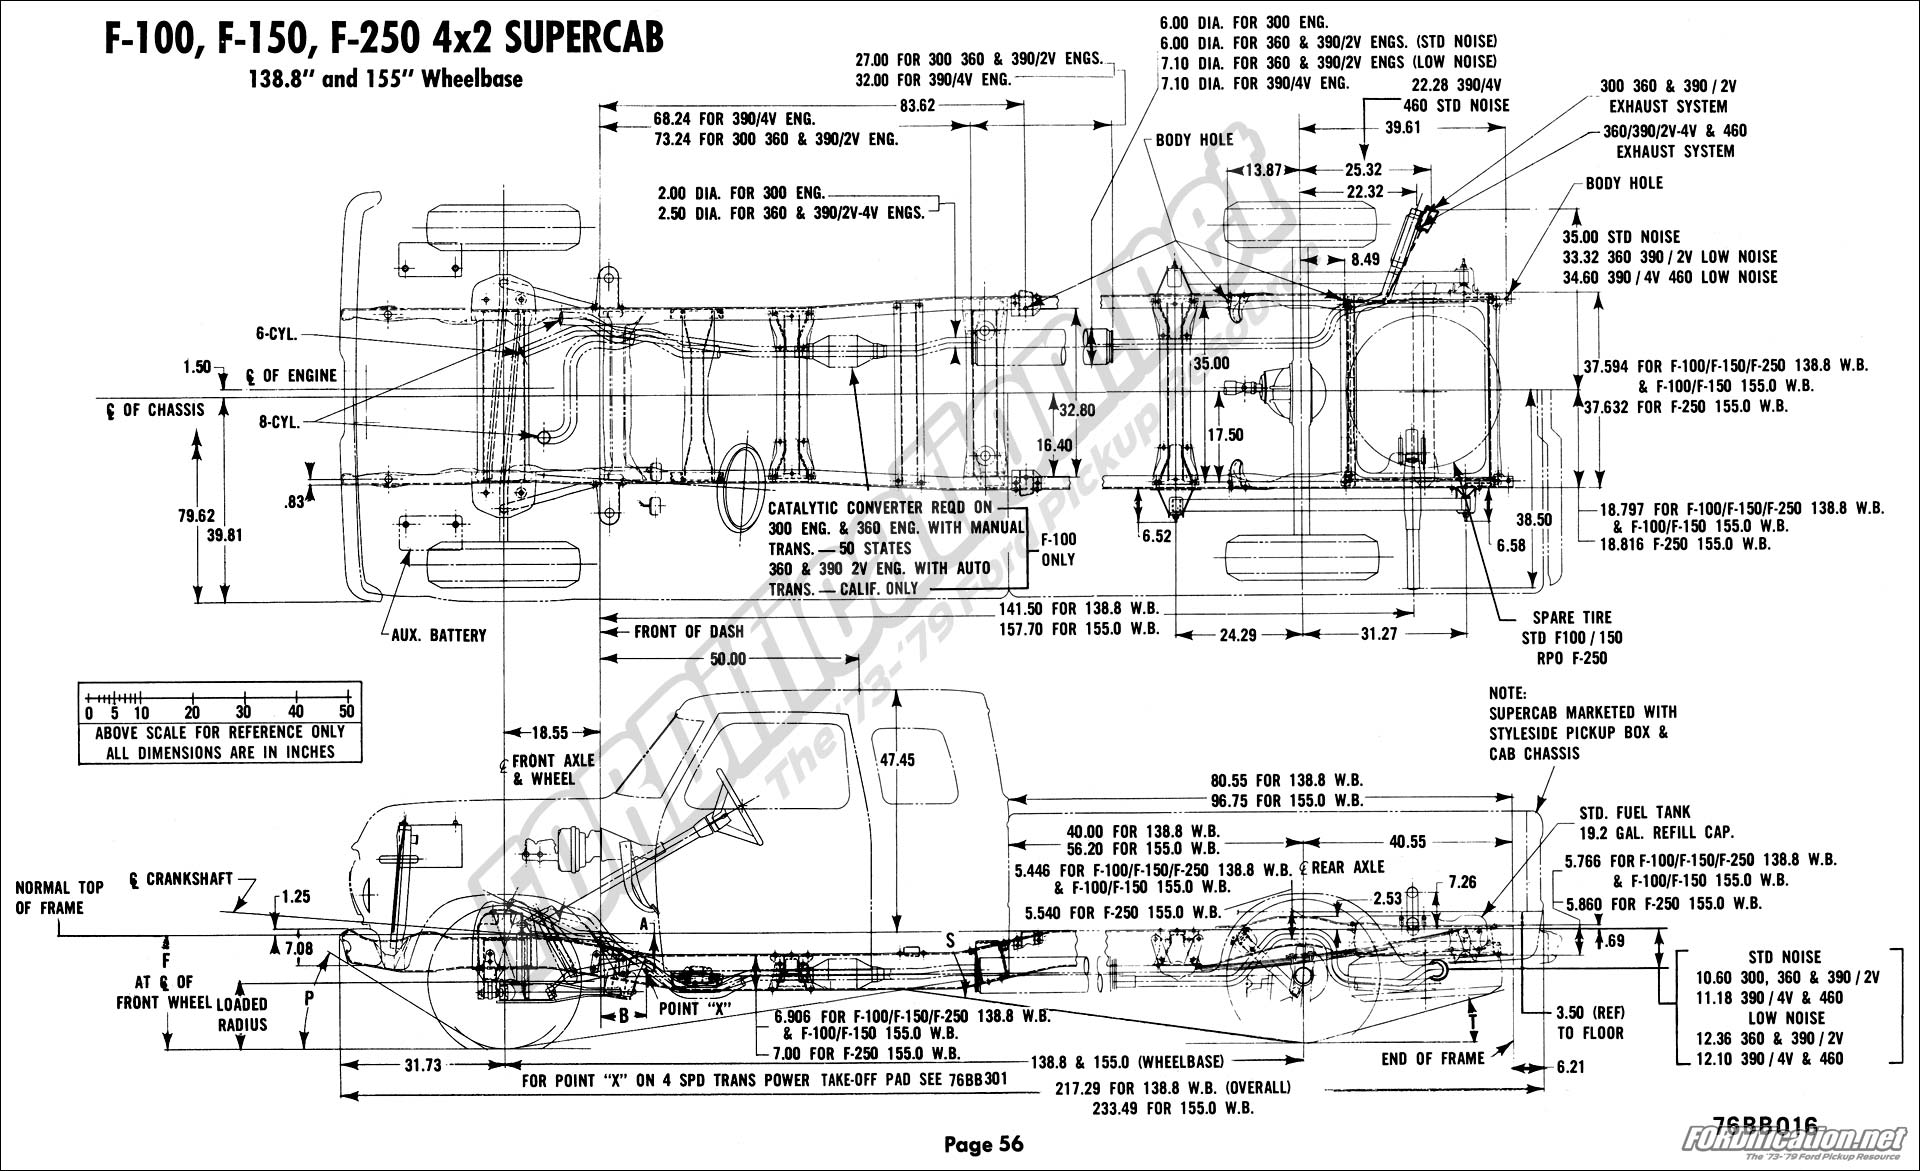 hight resolution of 78 f150 truck frame diagram wiring diagrams value 2001 f150 frame diagram wiring diagram sample 78